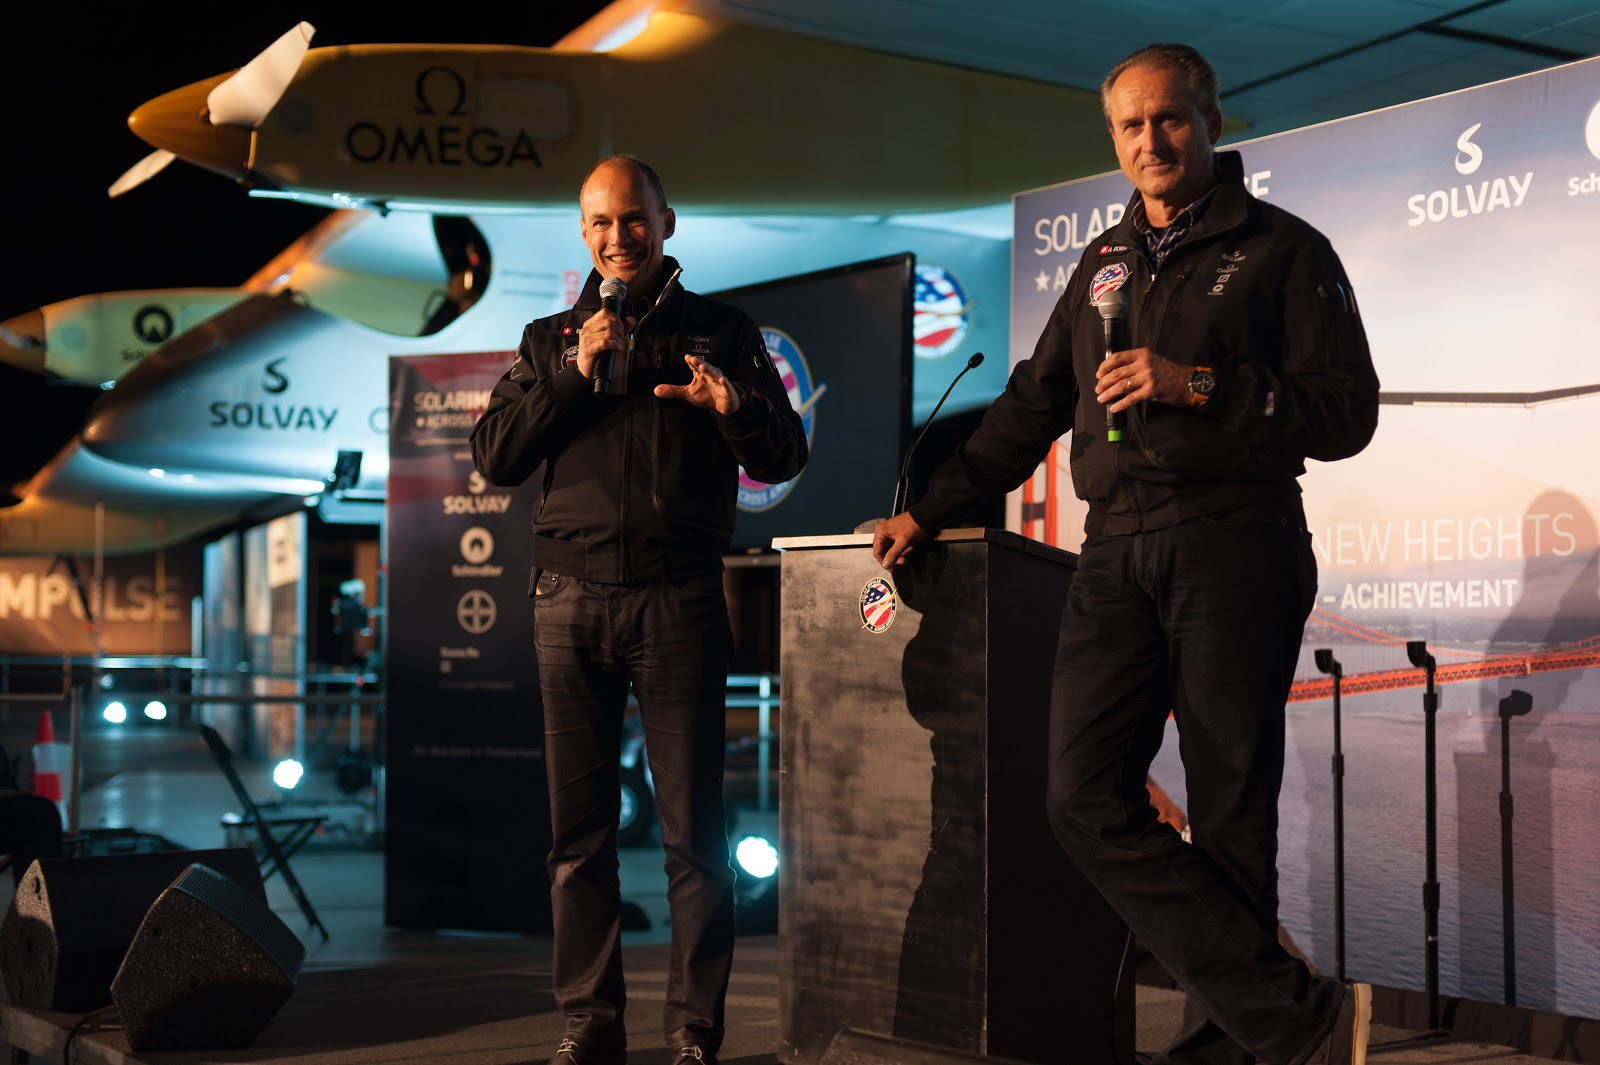 Bertrand Piccard and André Borschberg